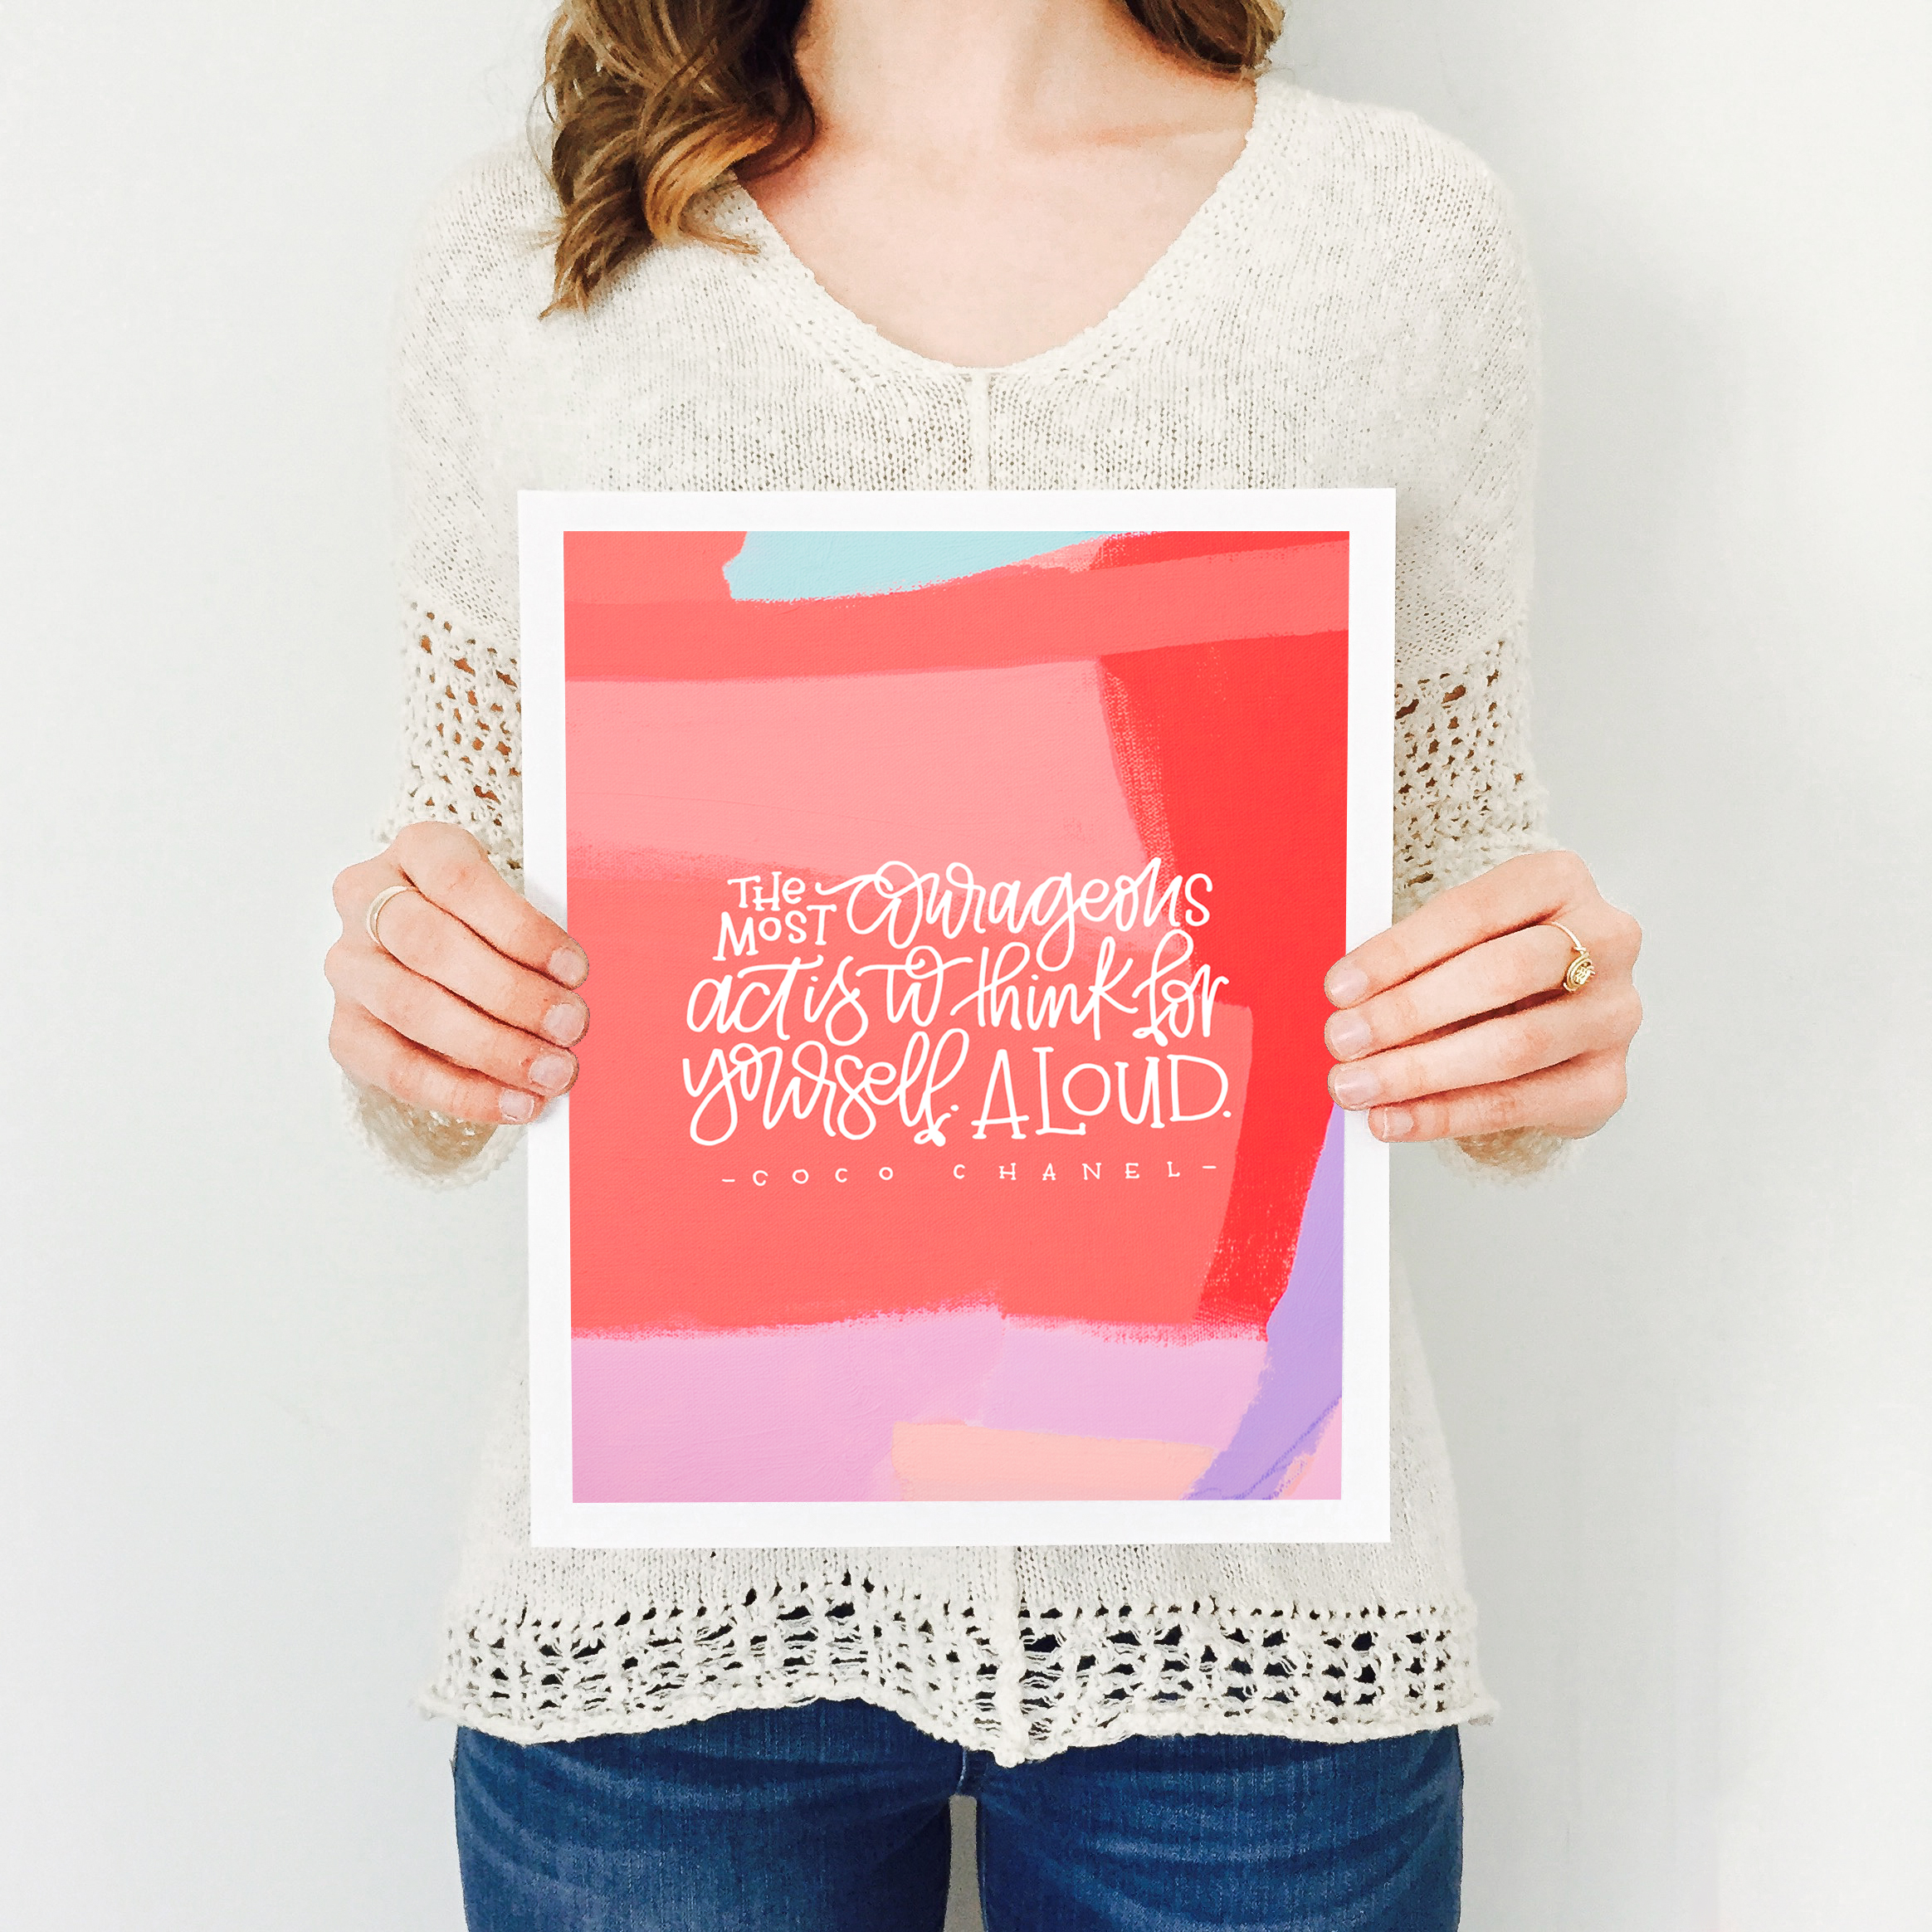 Women's History Month Project by Katherine Jury and Pommel Co.  |  Visit www.katherinejury.com to shop the collection!  #womenshistorymonth #cocochanel #print #quote